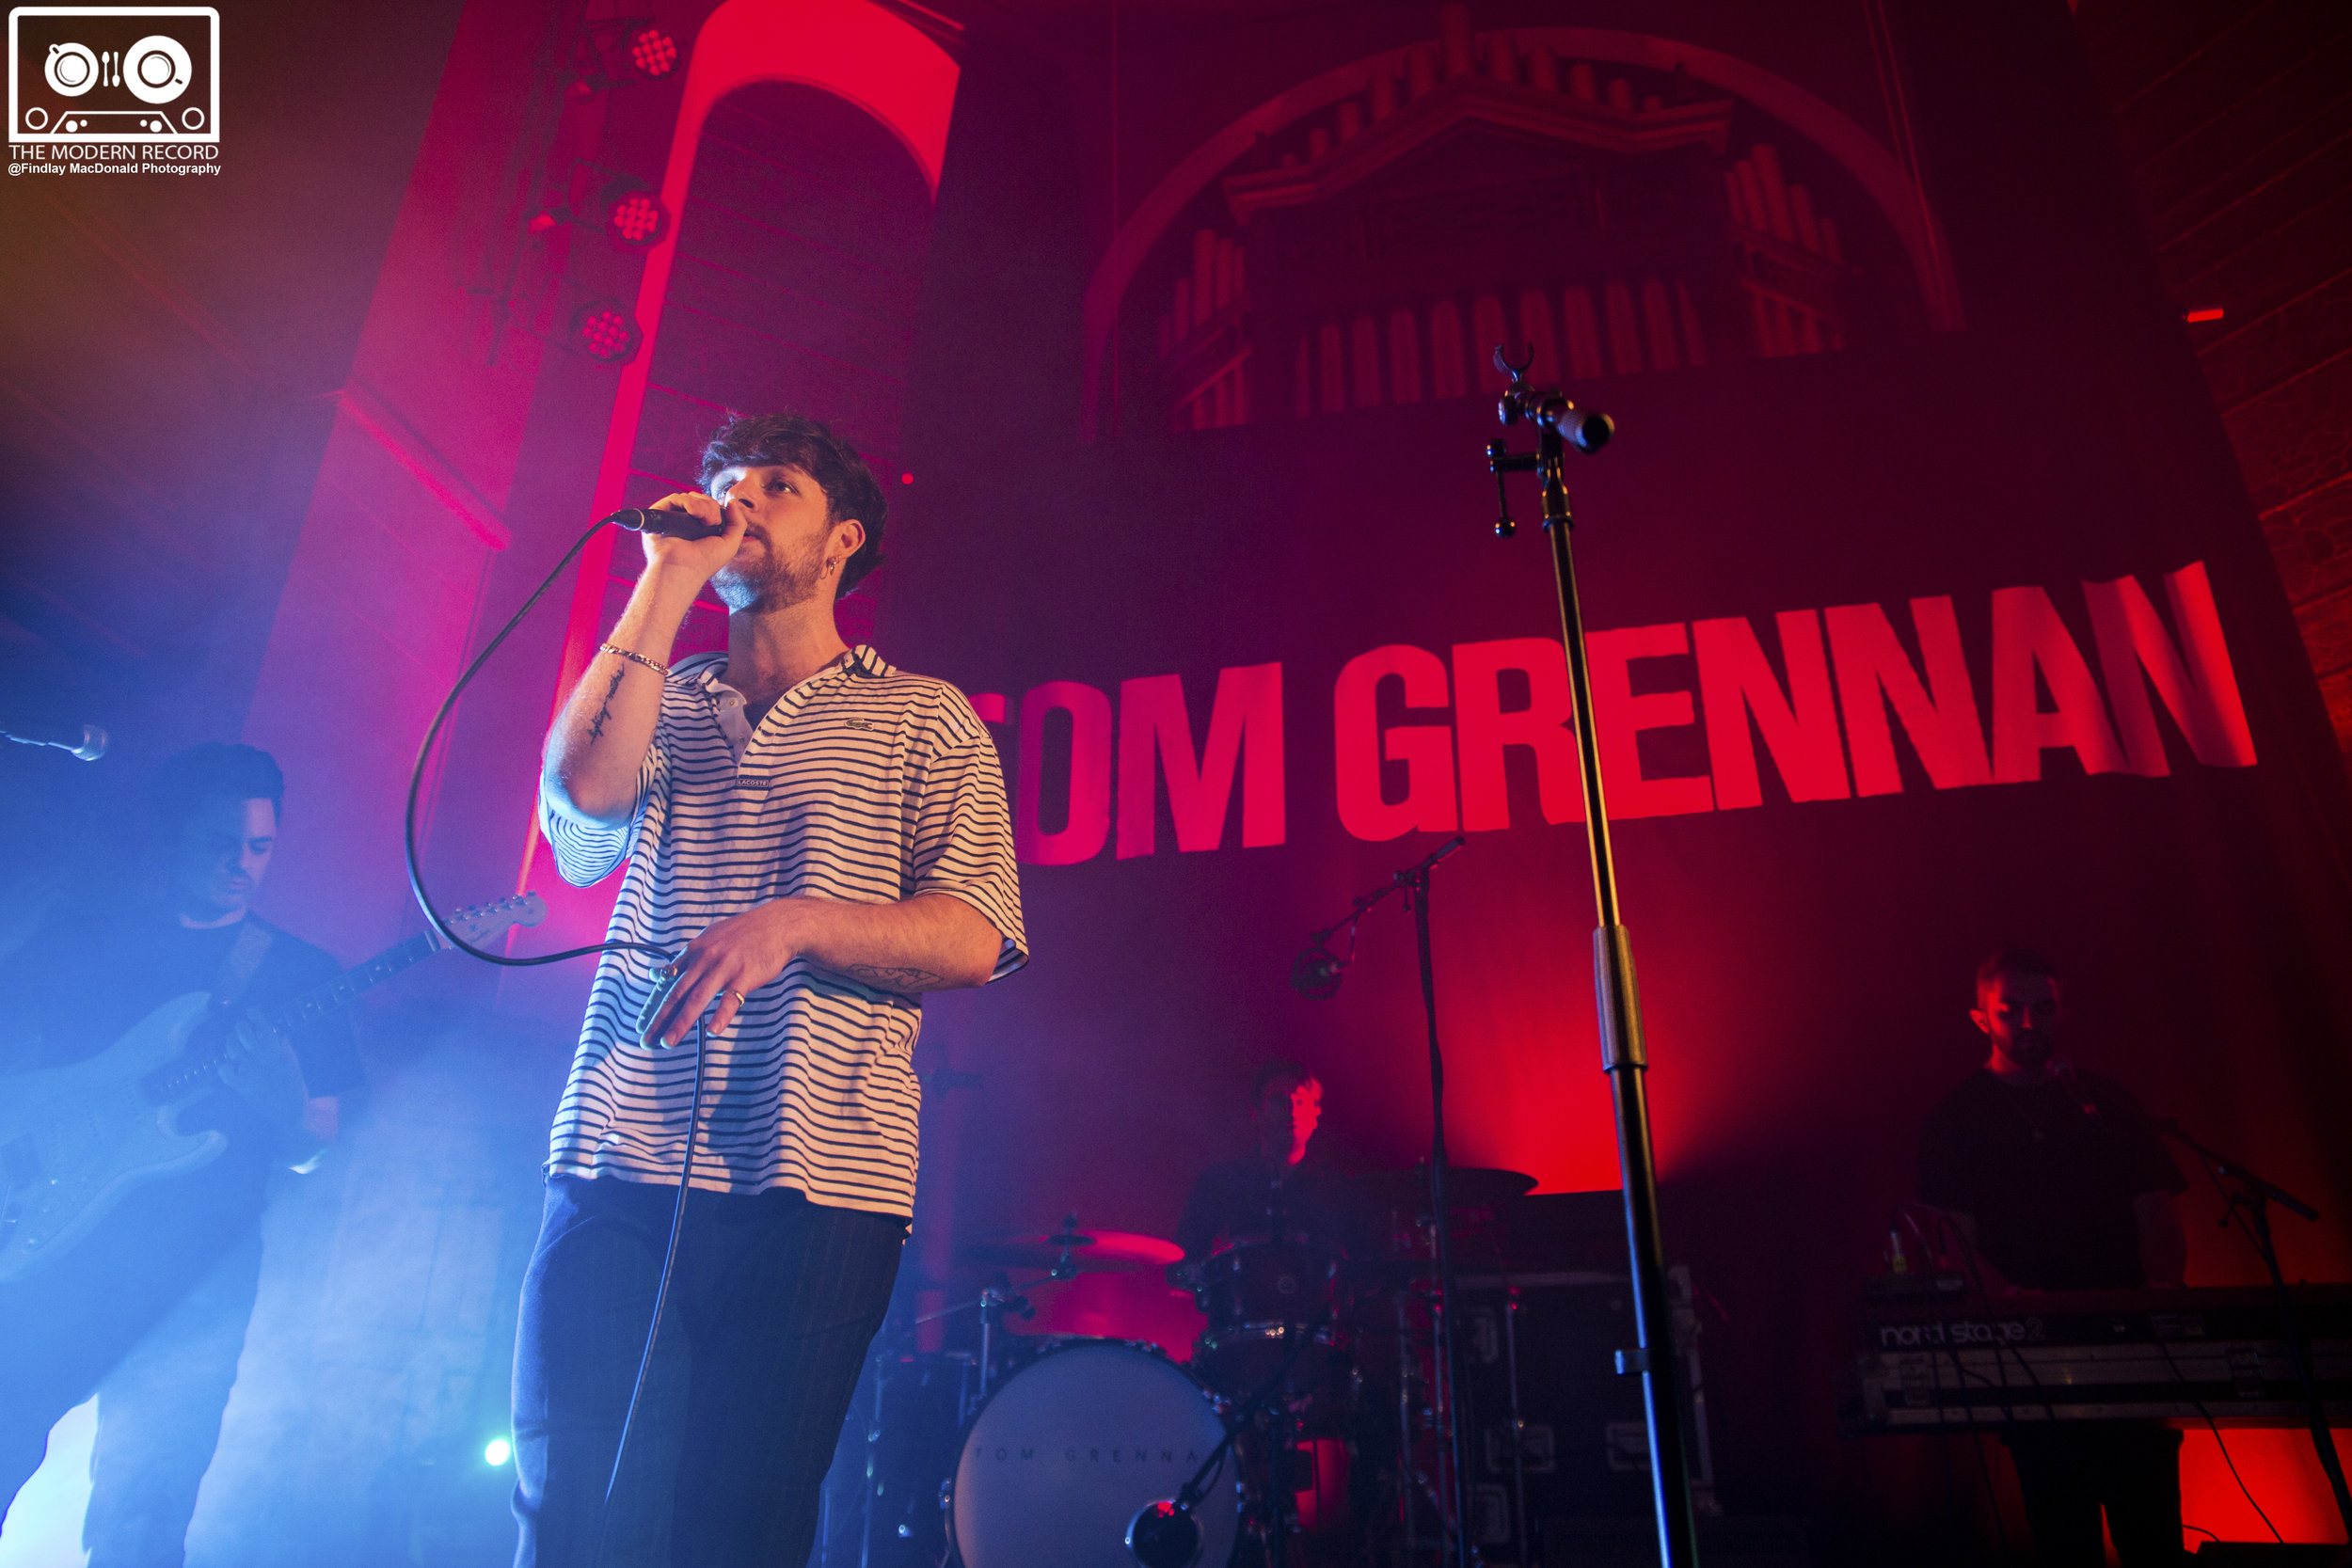 TOM GRENNAN PERFORMING AT GLASGOW'S ST LUKE'S VENUE - 07/10/2017  PICTURE BY: FINDLAY MACDONALD PHOTOGRAPHY